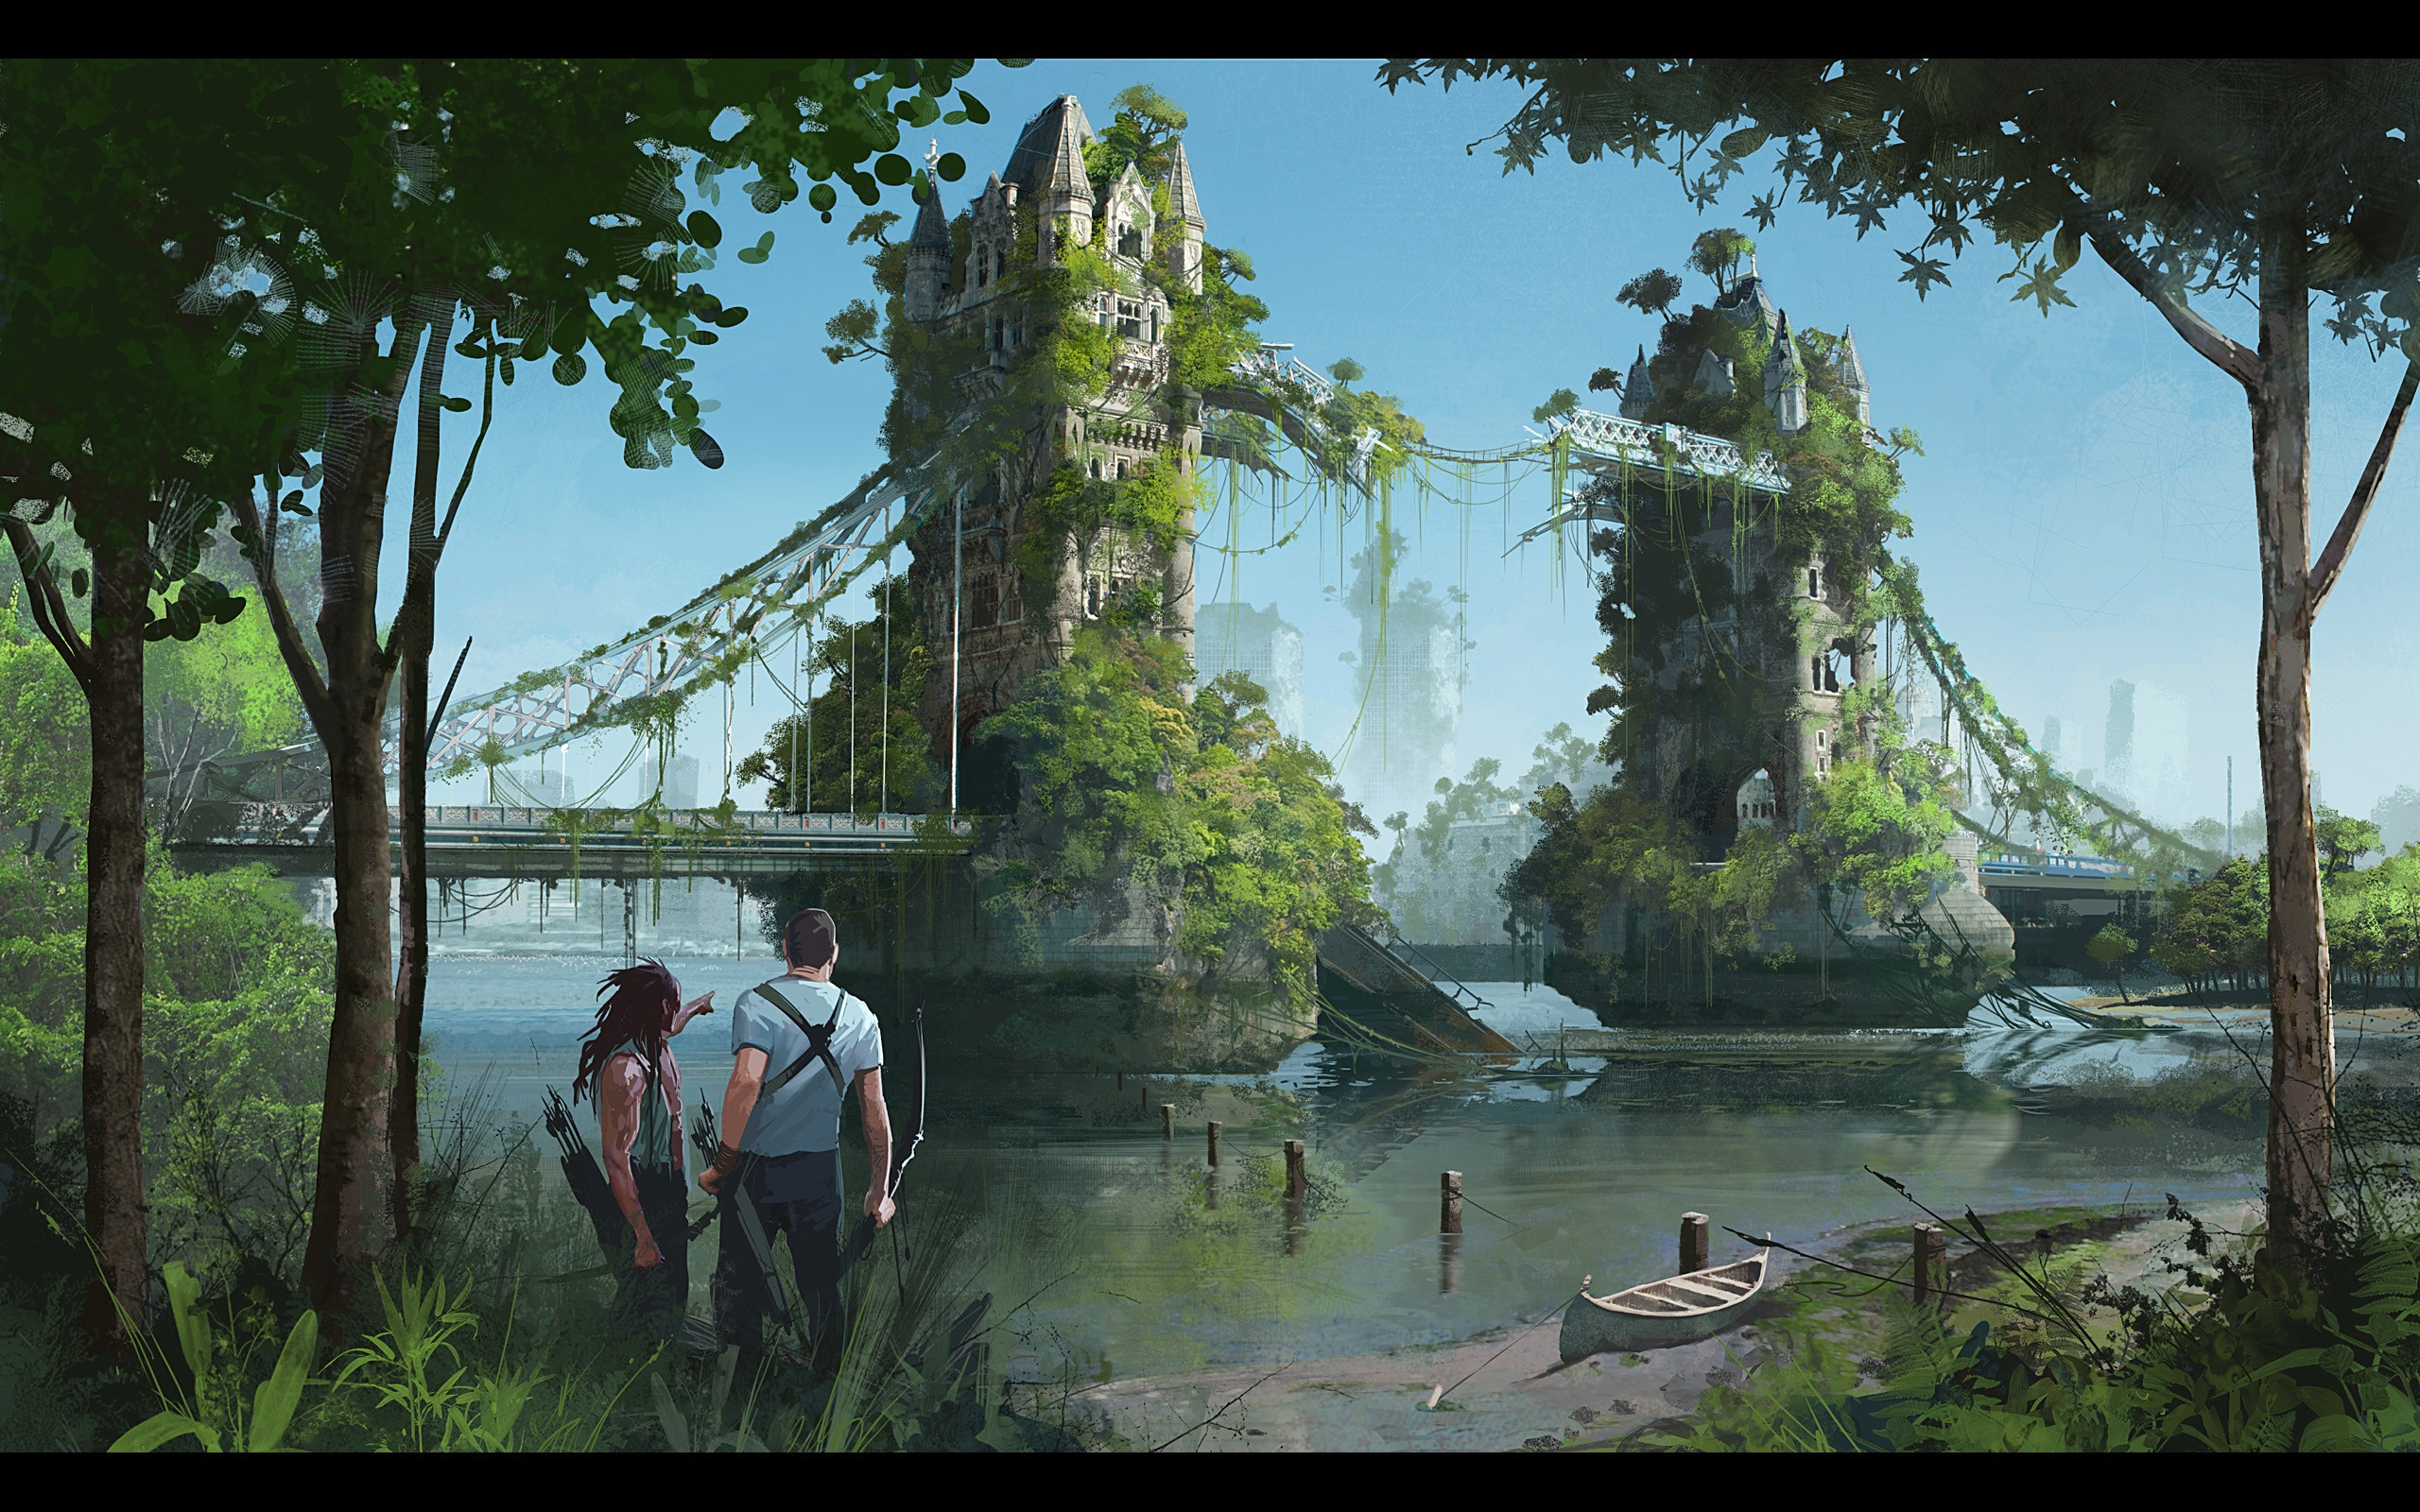 Post Apocalyptic Overgrown City background picture